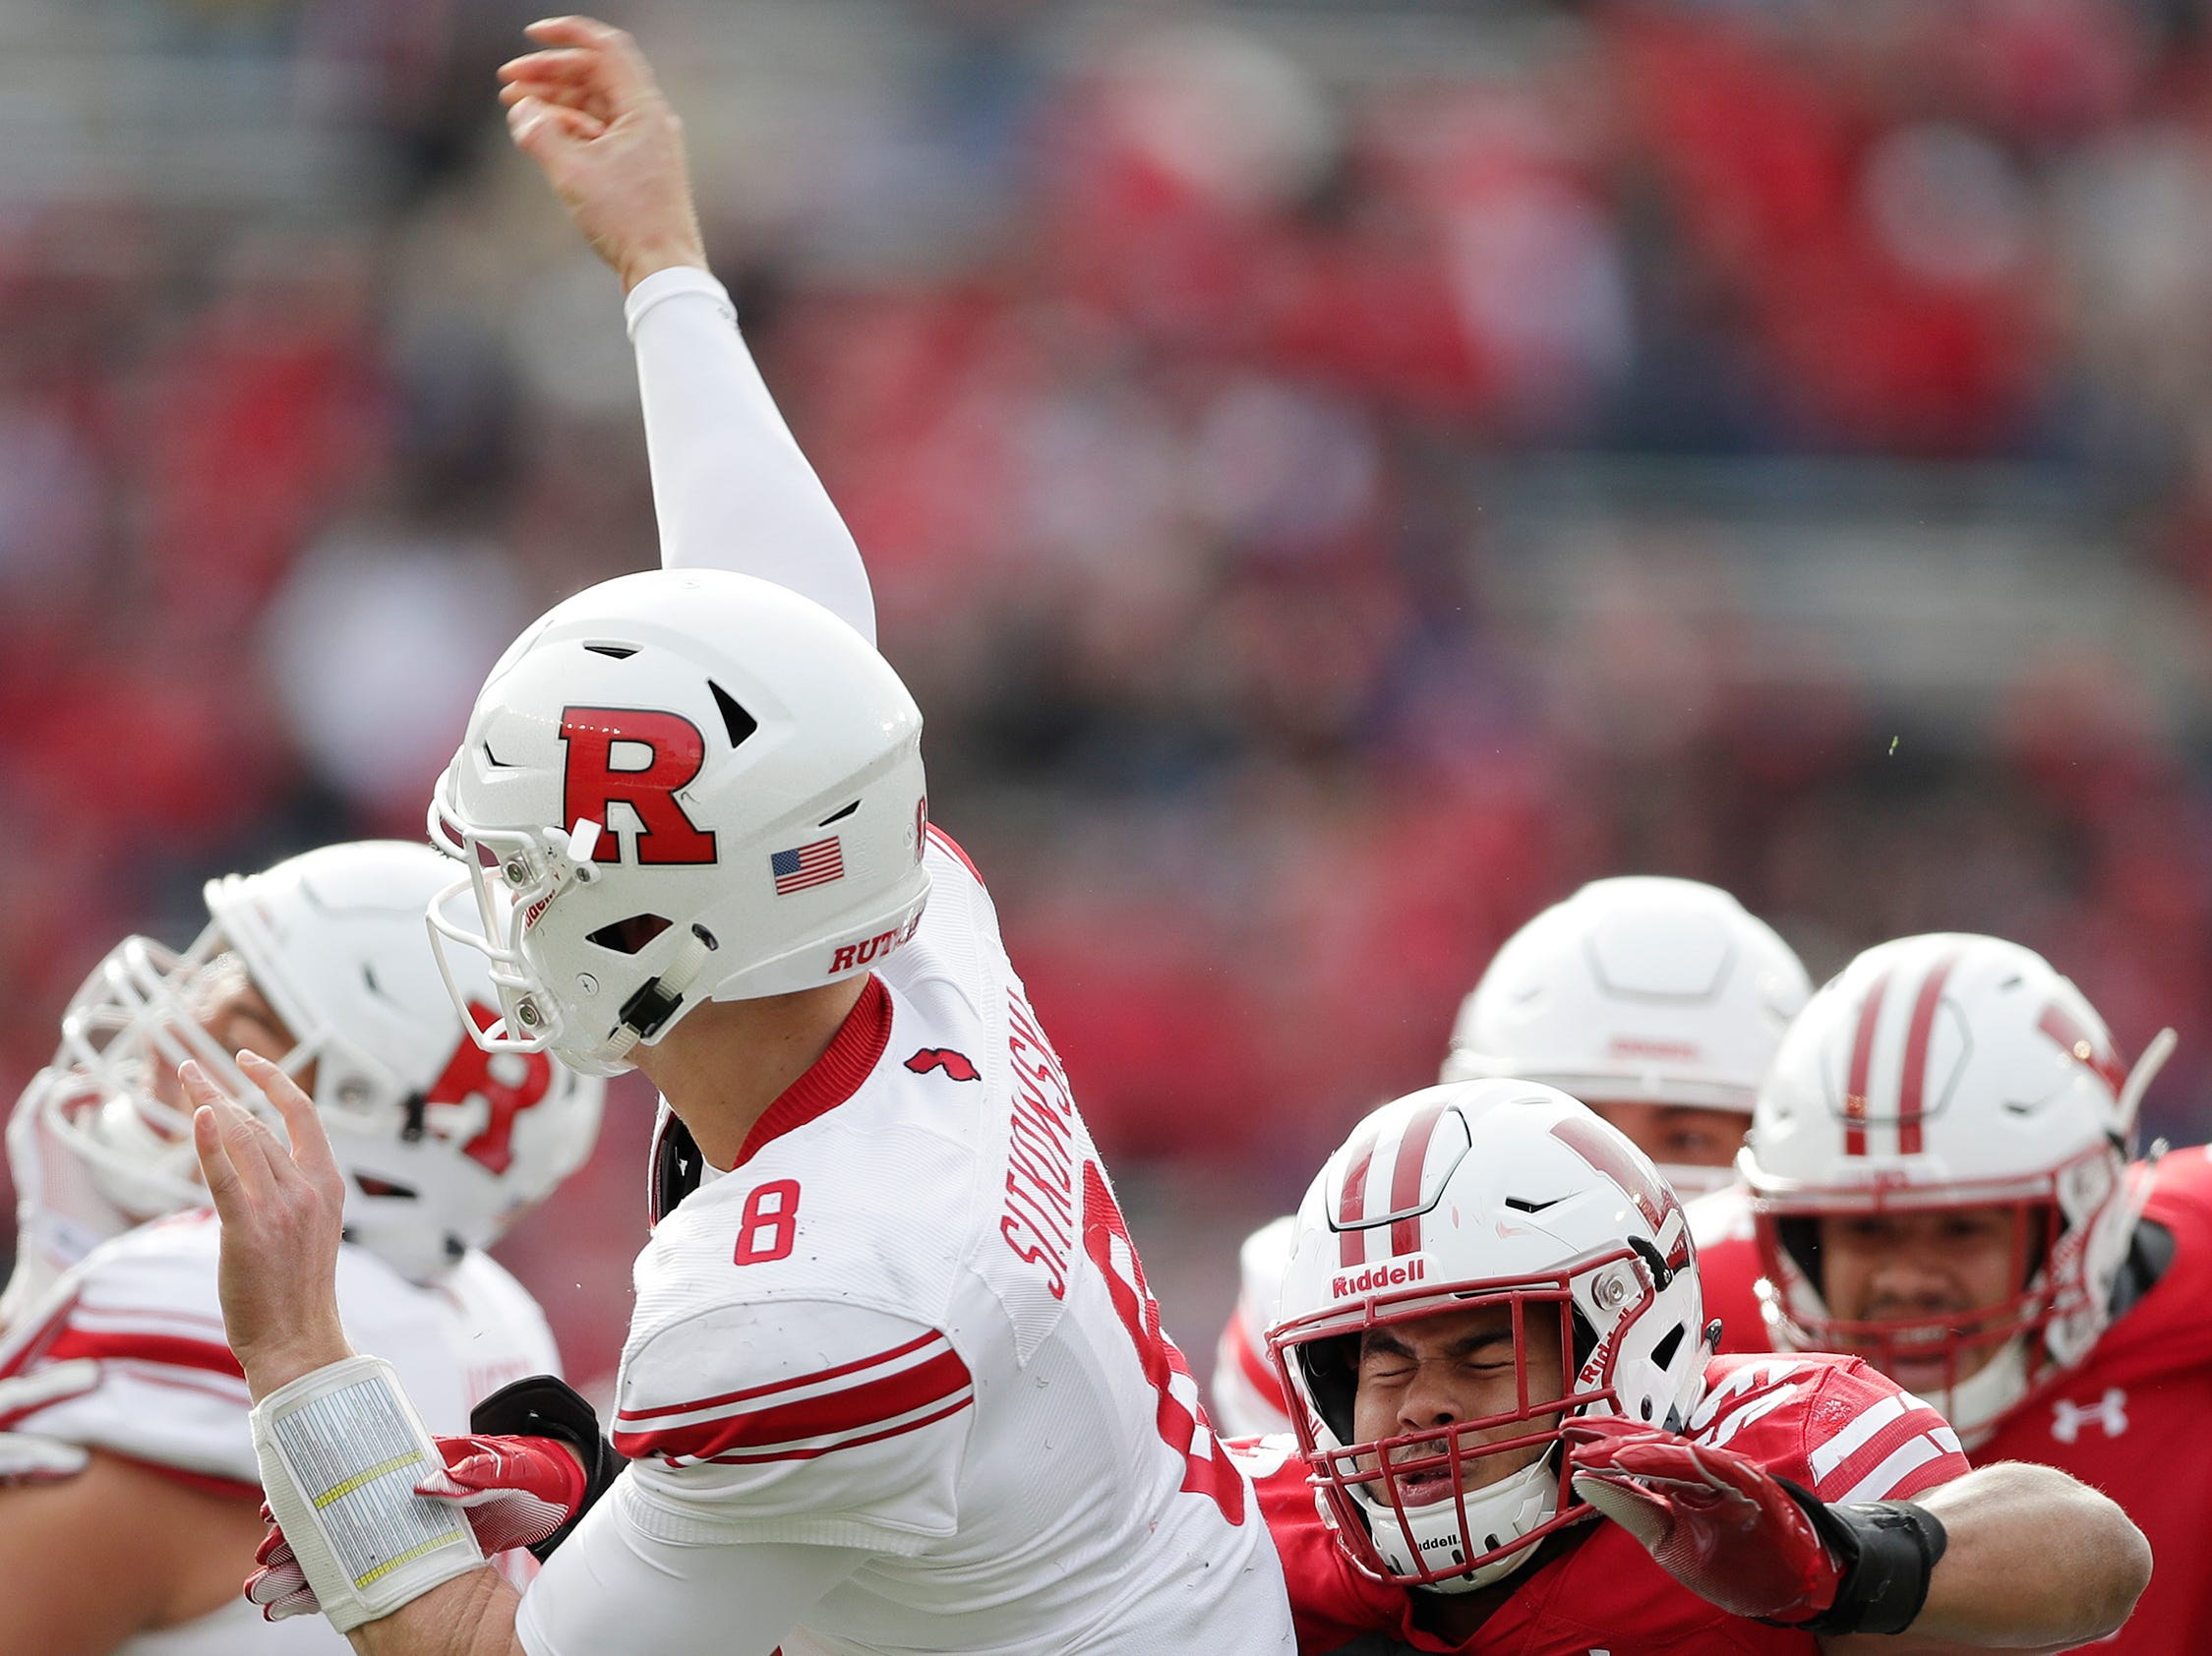 Wisconsin Badgers linebacker T.J. Edwards (53) pressues Rutgers Scarlet Knights quarterback Artur Sitkowski (8) in the second quarter of a Big Ten football game at Camp Randall Stadium on Saturday, November 3, 2018 in Madison, Wis.Adam Wesley/USA TODAY NETWORK-Wisconsin